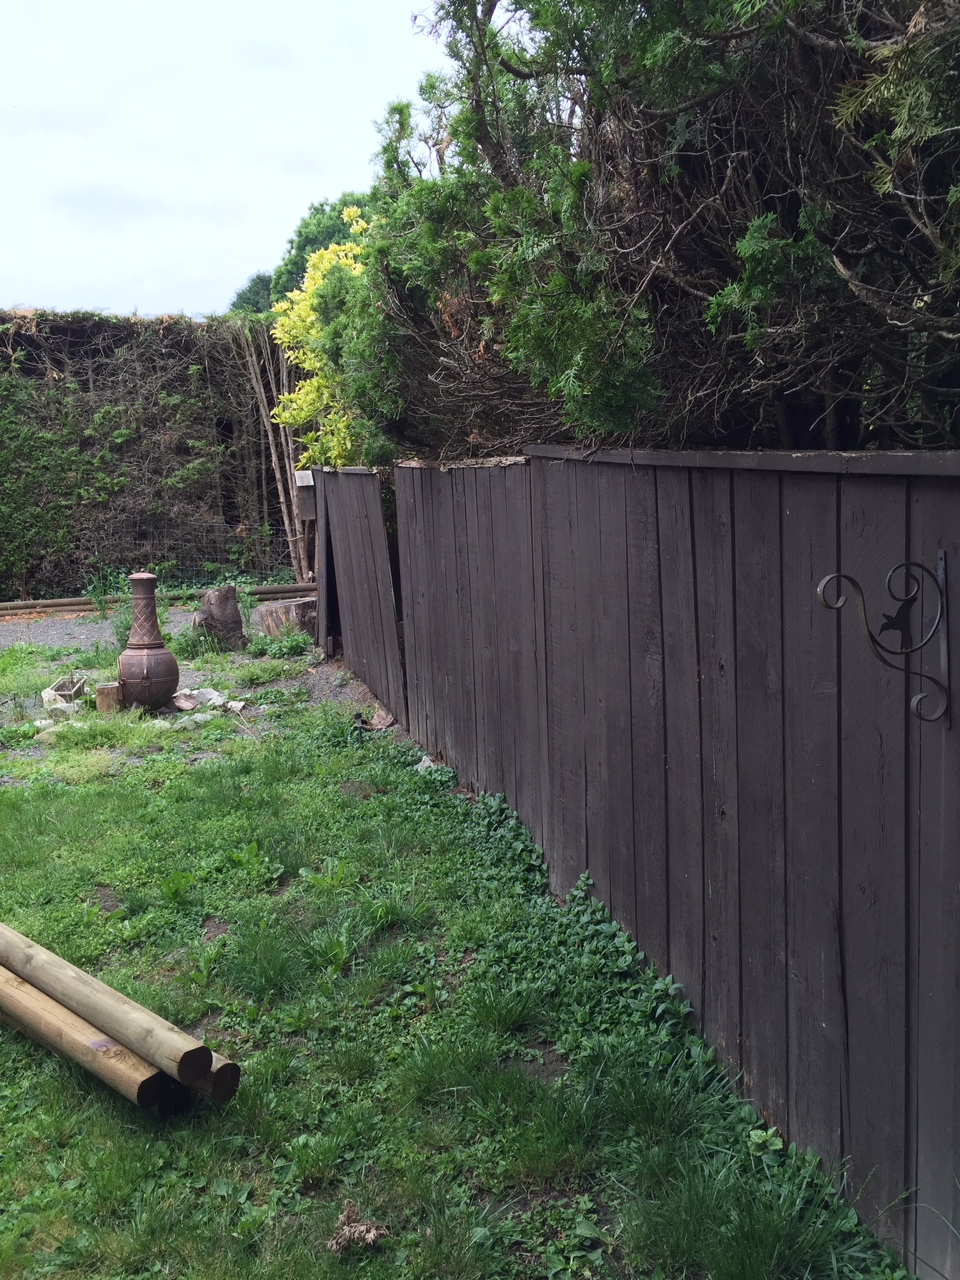 The Everyday Journalista, Everyday Journalista, Backyard Makeover, Backyard update, Backyard sketches, Backyard plans, DIY, Fence DIY, New Fence, New fence project,